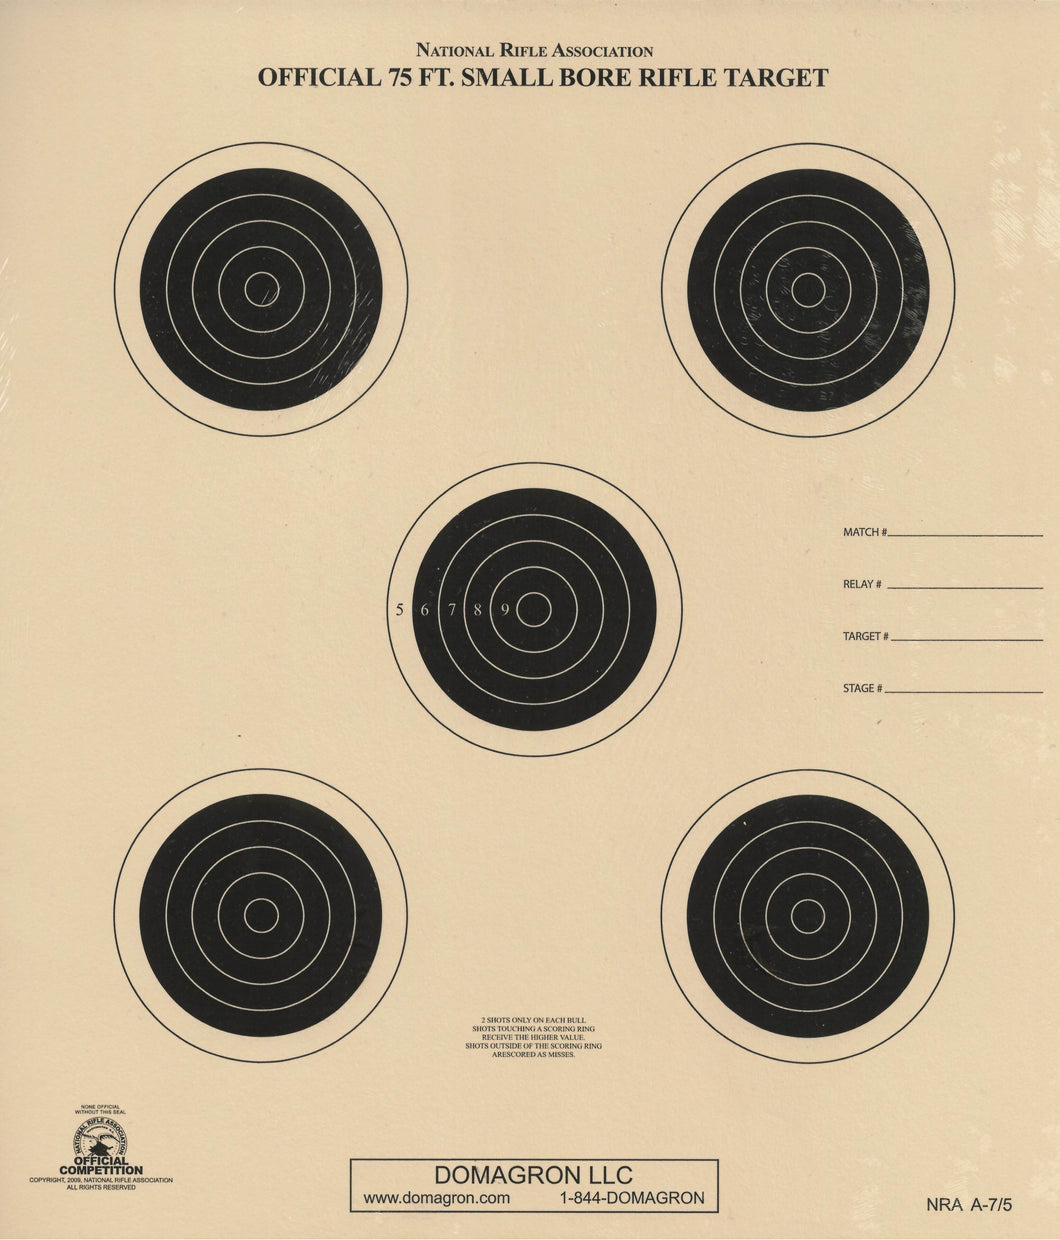 A-7/5 - 75 Foot Small Bore Rifle Target (Pack of 100) - DOMAGRON